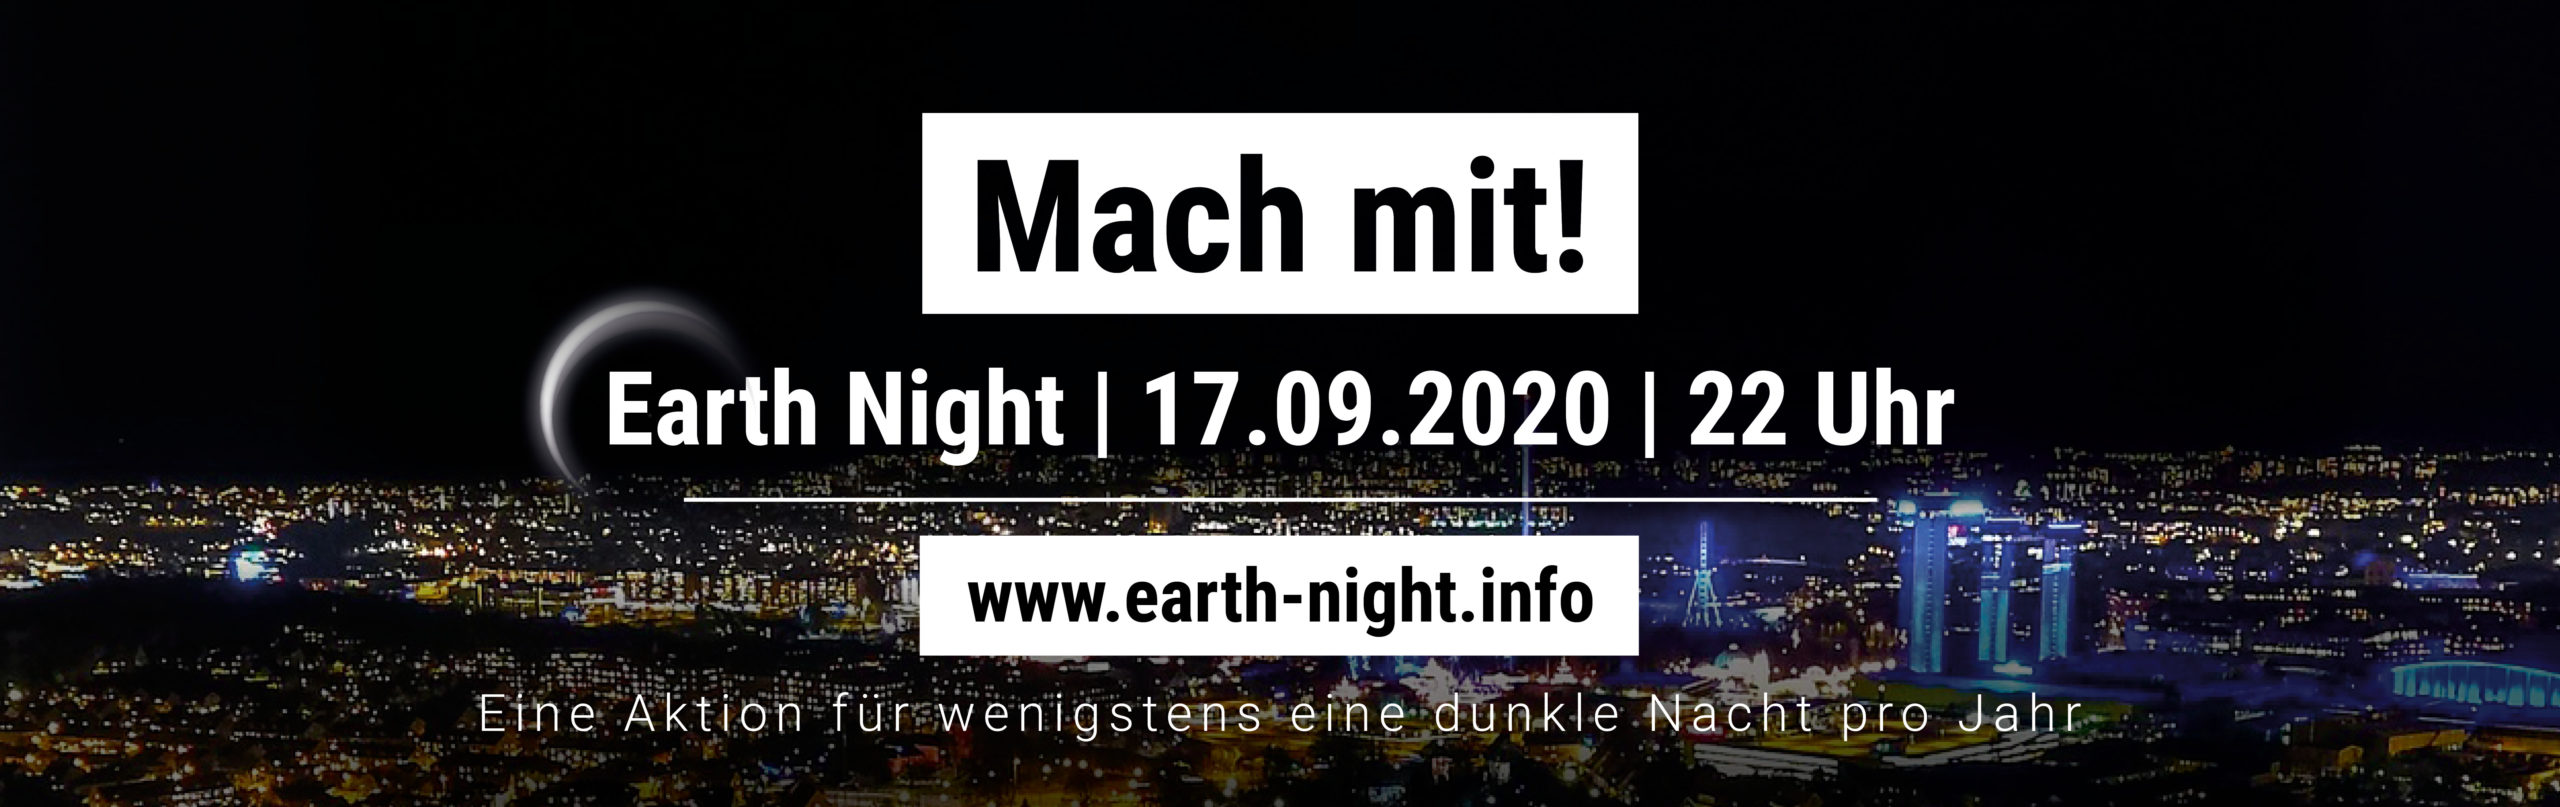 Earth Night 2020 by Paten der Nacht